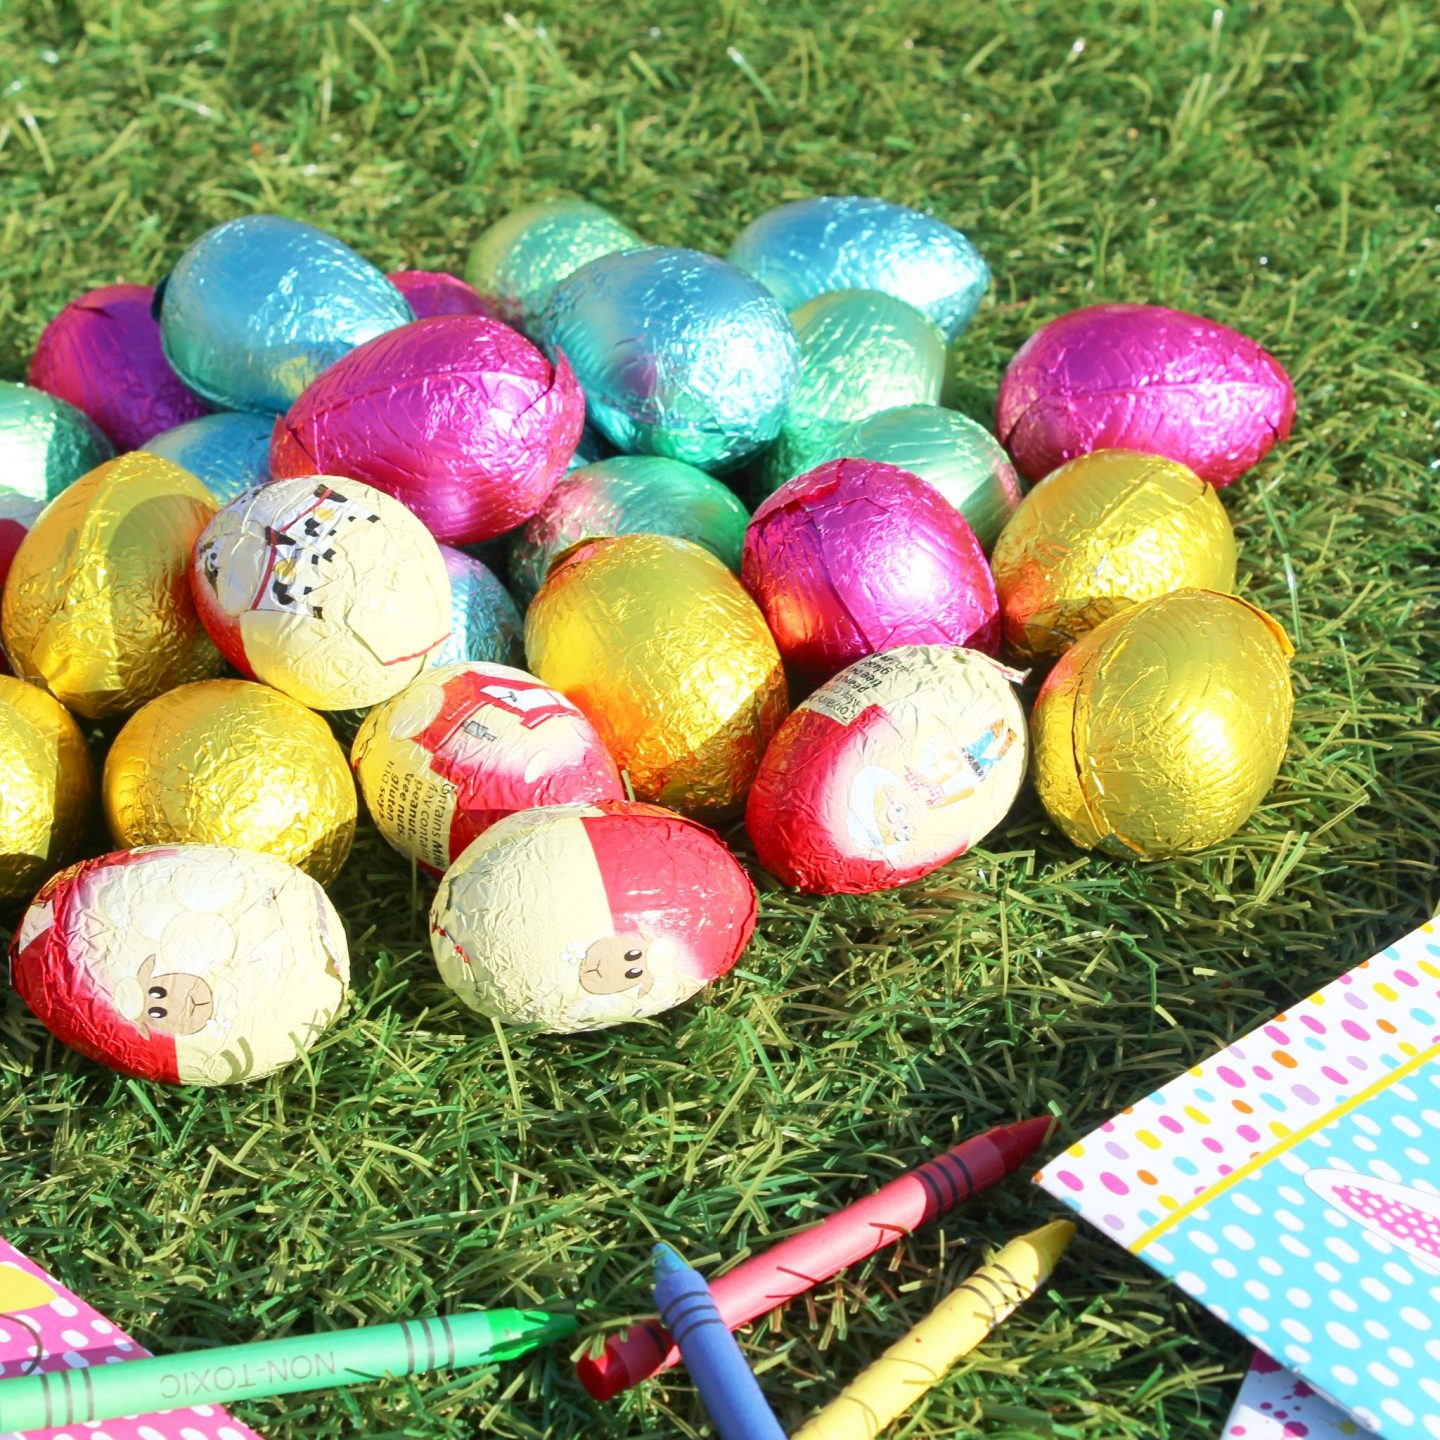 Happy Easter Everyone! | Easter Sunday Photo Diary